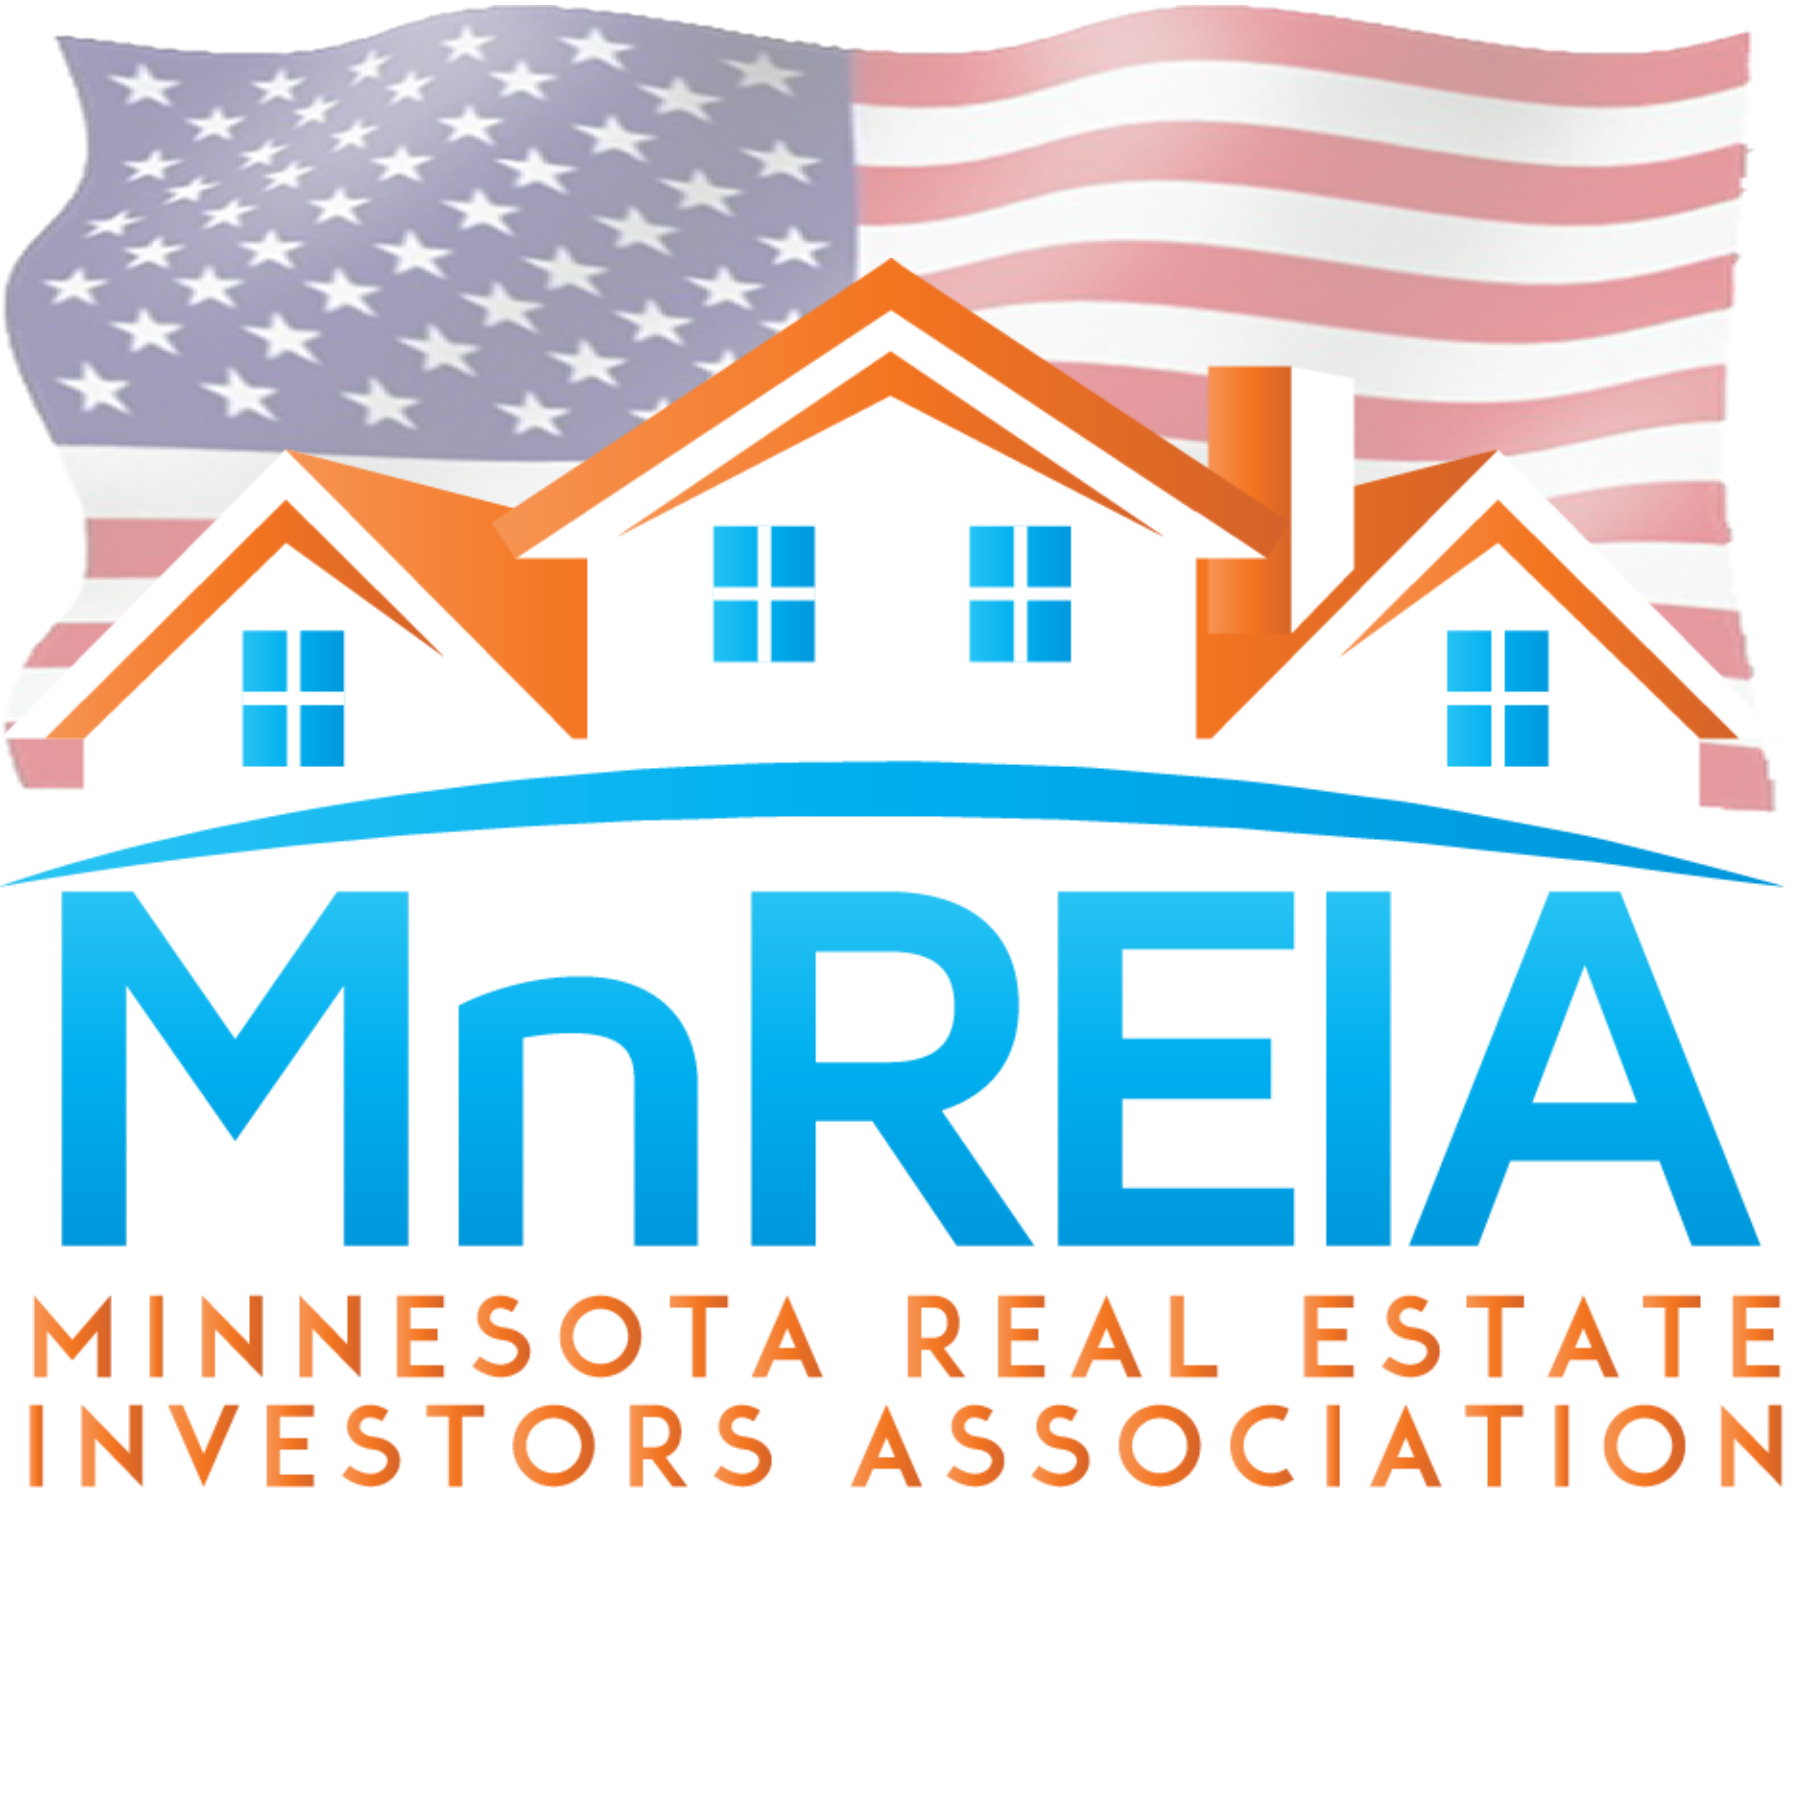 (MnREIA) Minnesota Real Estate Investors Association, Inc.